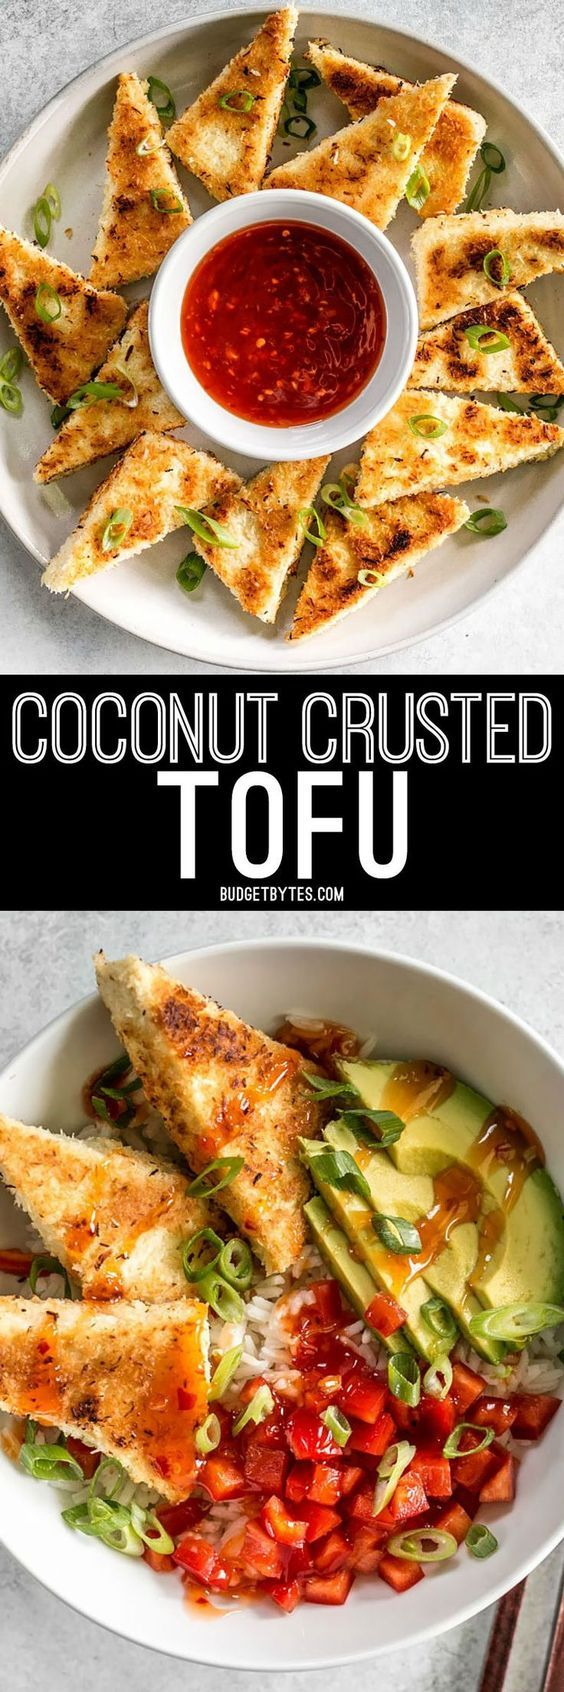 These subtly sweet Coconut Crusted Tofu dippers are the perfect vehicle for tangy sweet chili sauce. Serve as a snack or part of your favorite bowl meal.